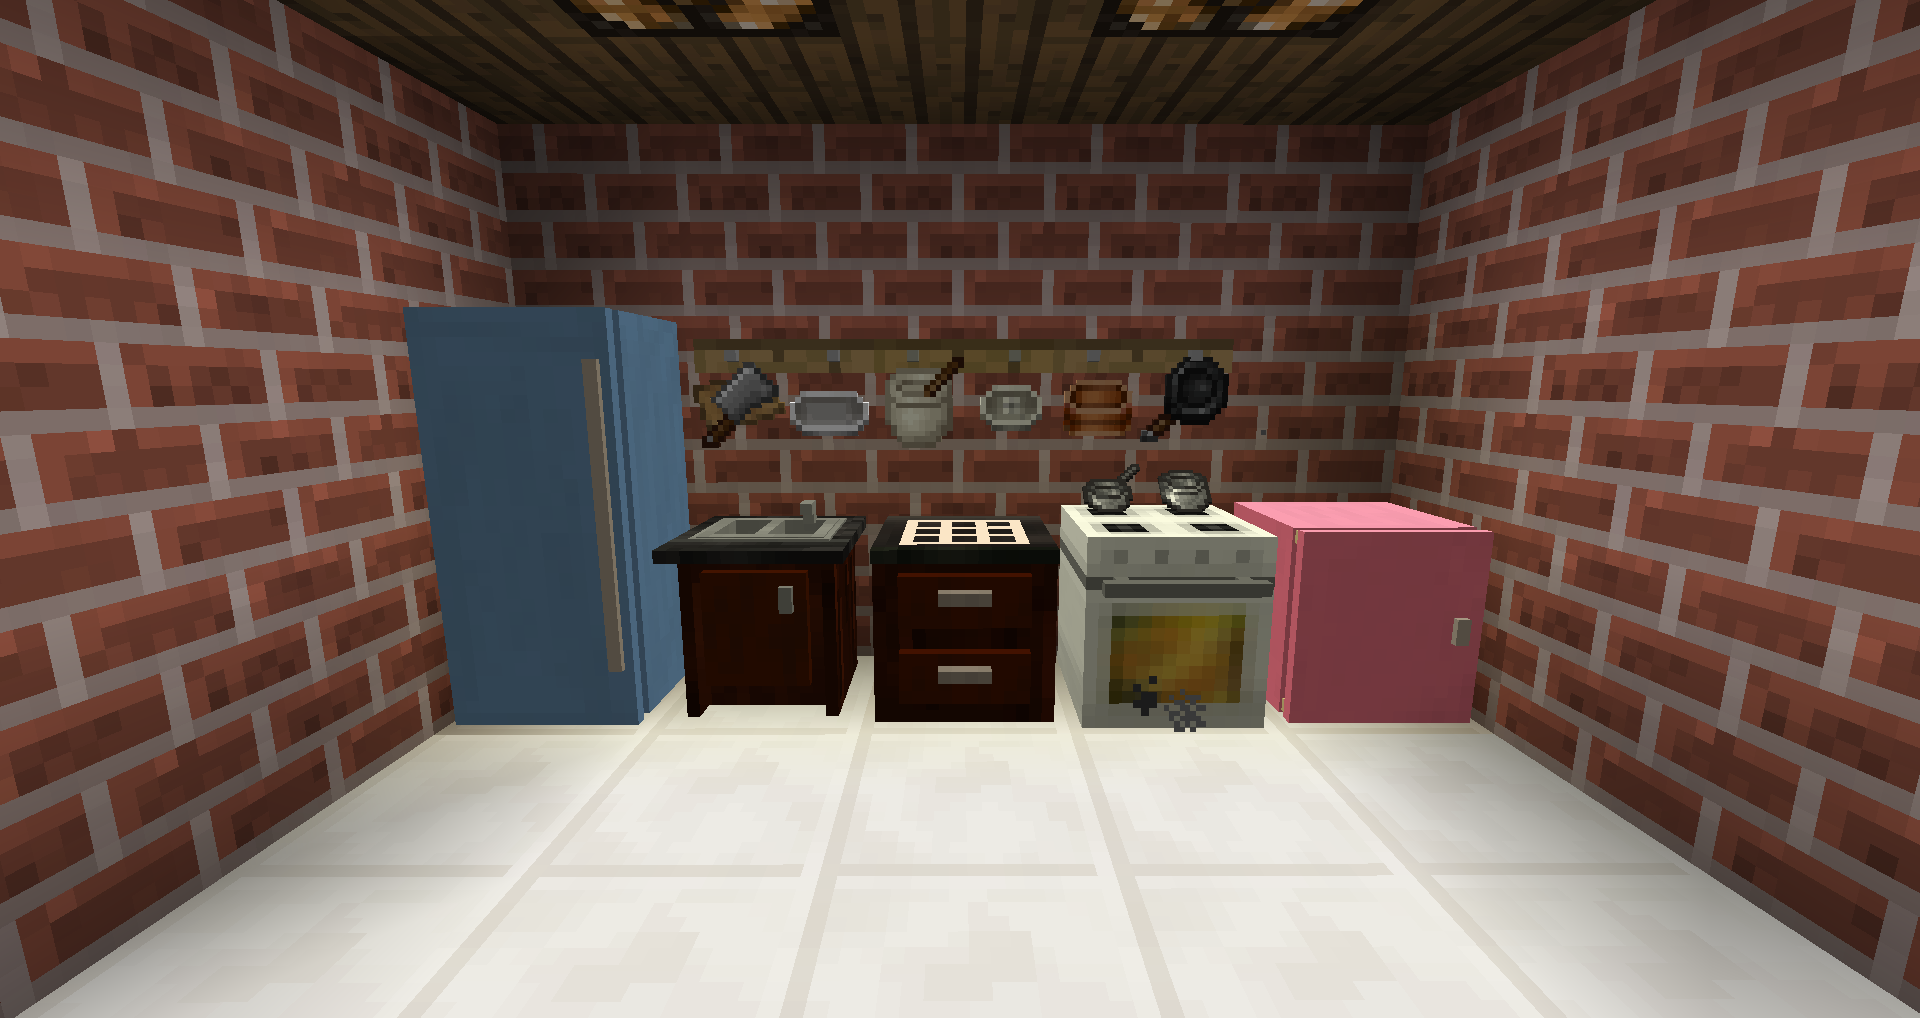 kitchen sink minecraft cooking for blockheads mod for minecraft 1 11 2 1 10 2 1 9 2787